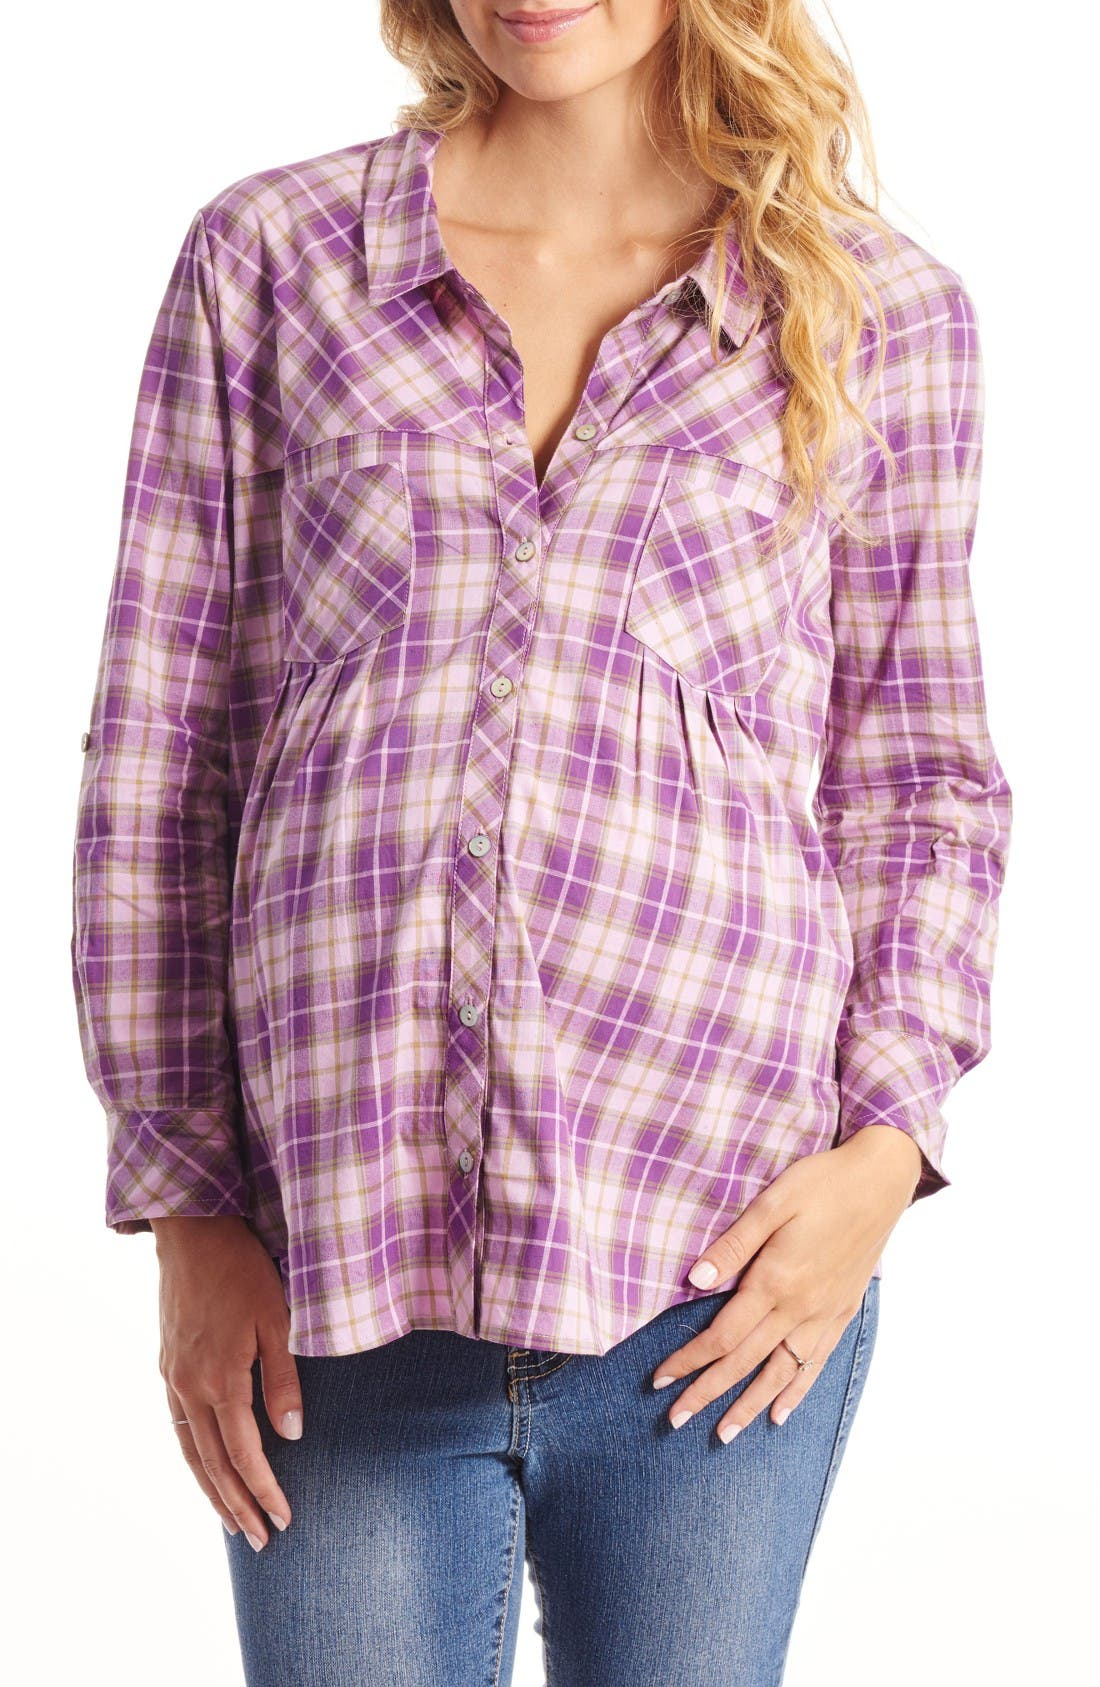 'Batina' Maternity Shirt,                             Main thumbnail 1, color,                             Lilac Plaid